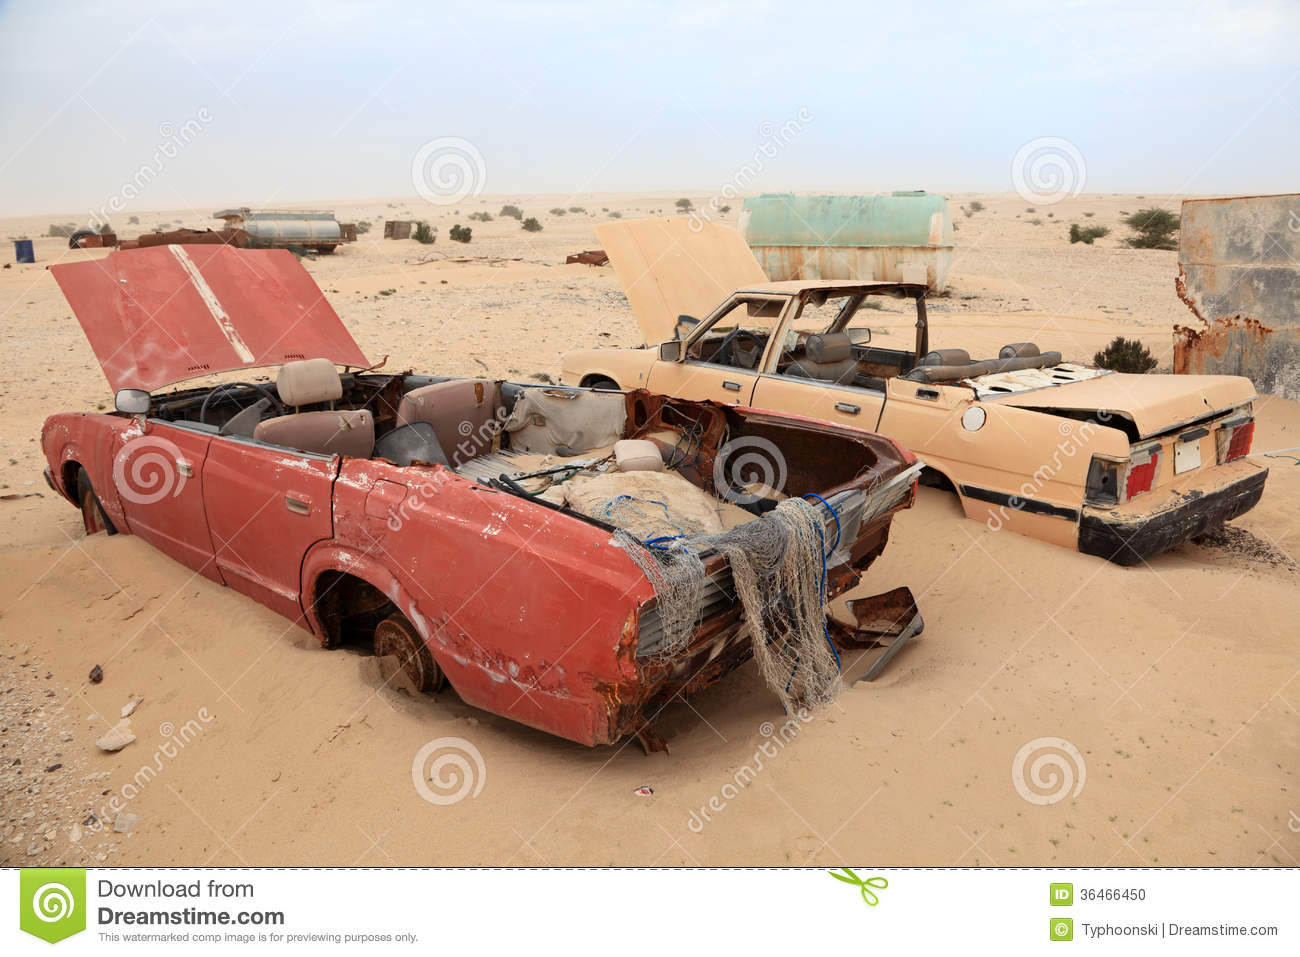 Image Result For Old Cars Qatar